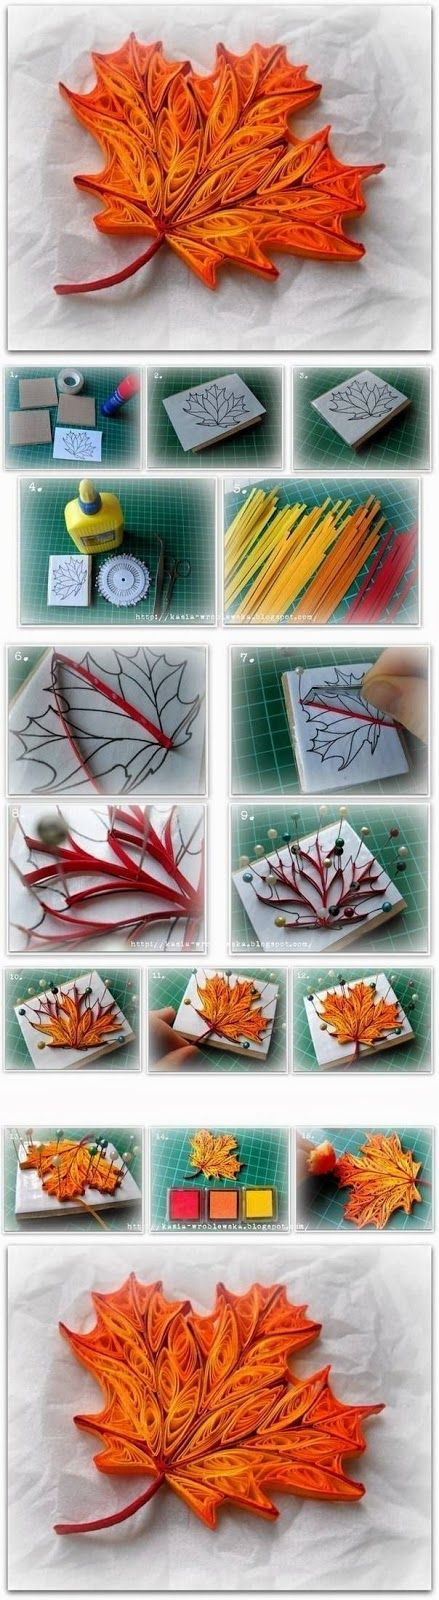 quilling a maple leaf.